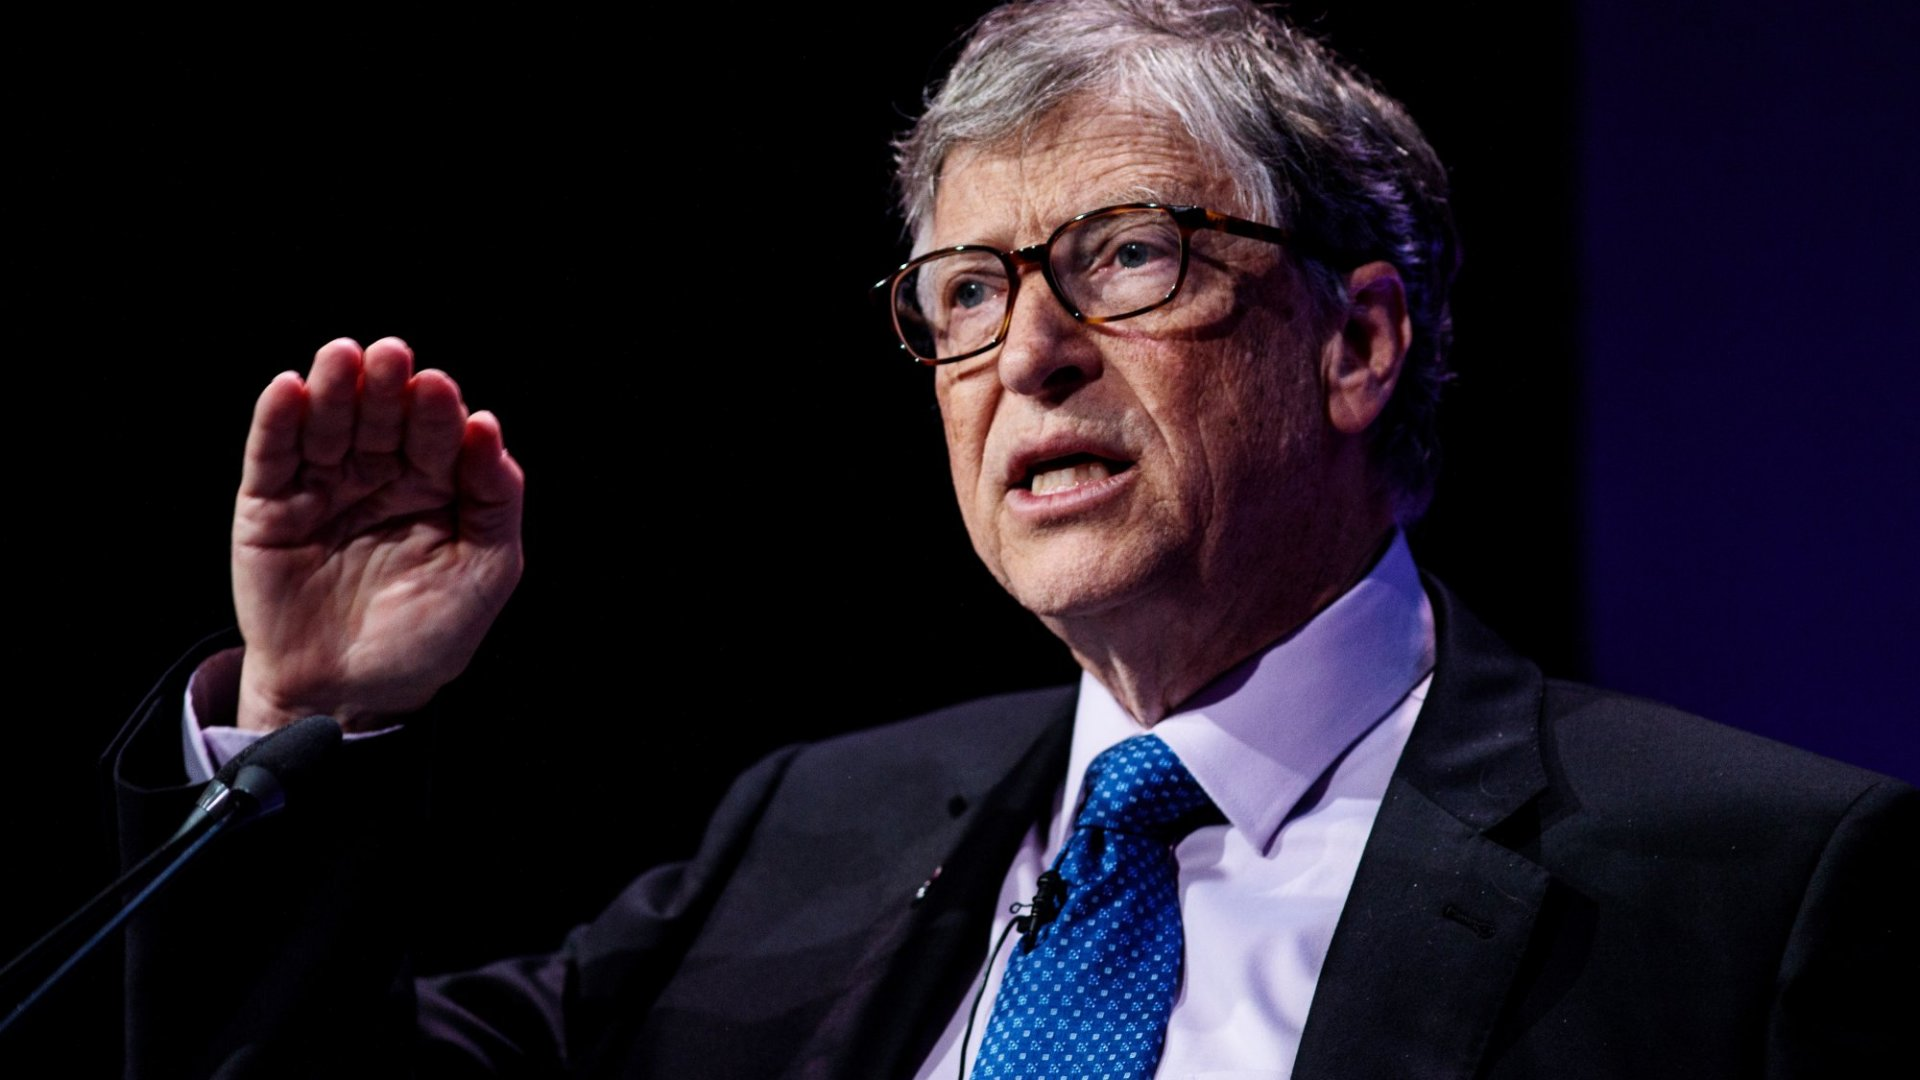 bill gates quotes about life, quotes of bill gates, bill gates quotes in bangla